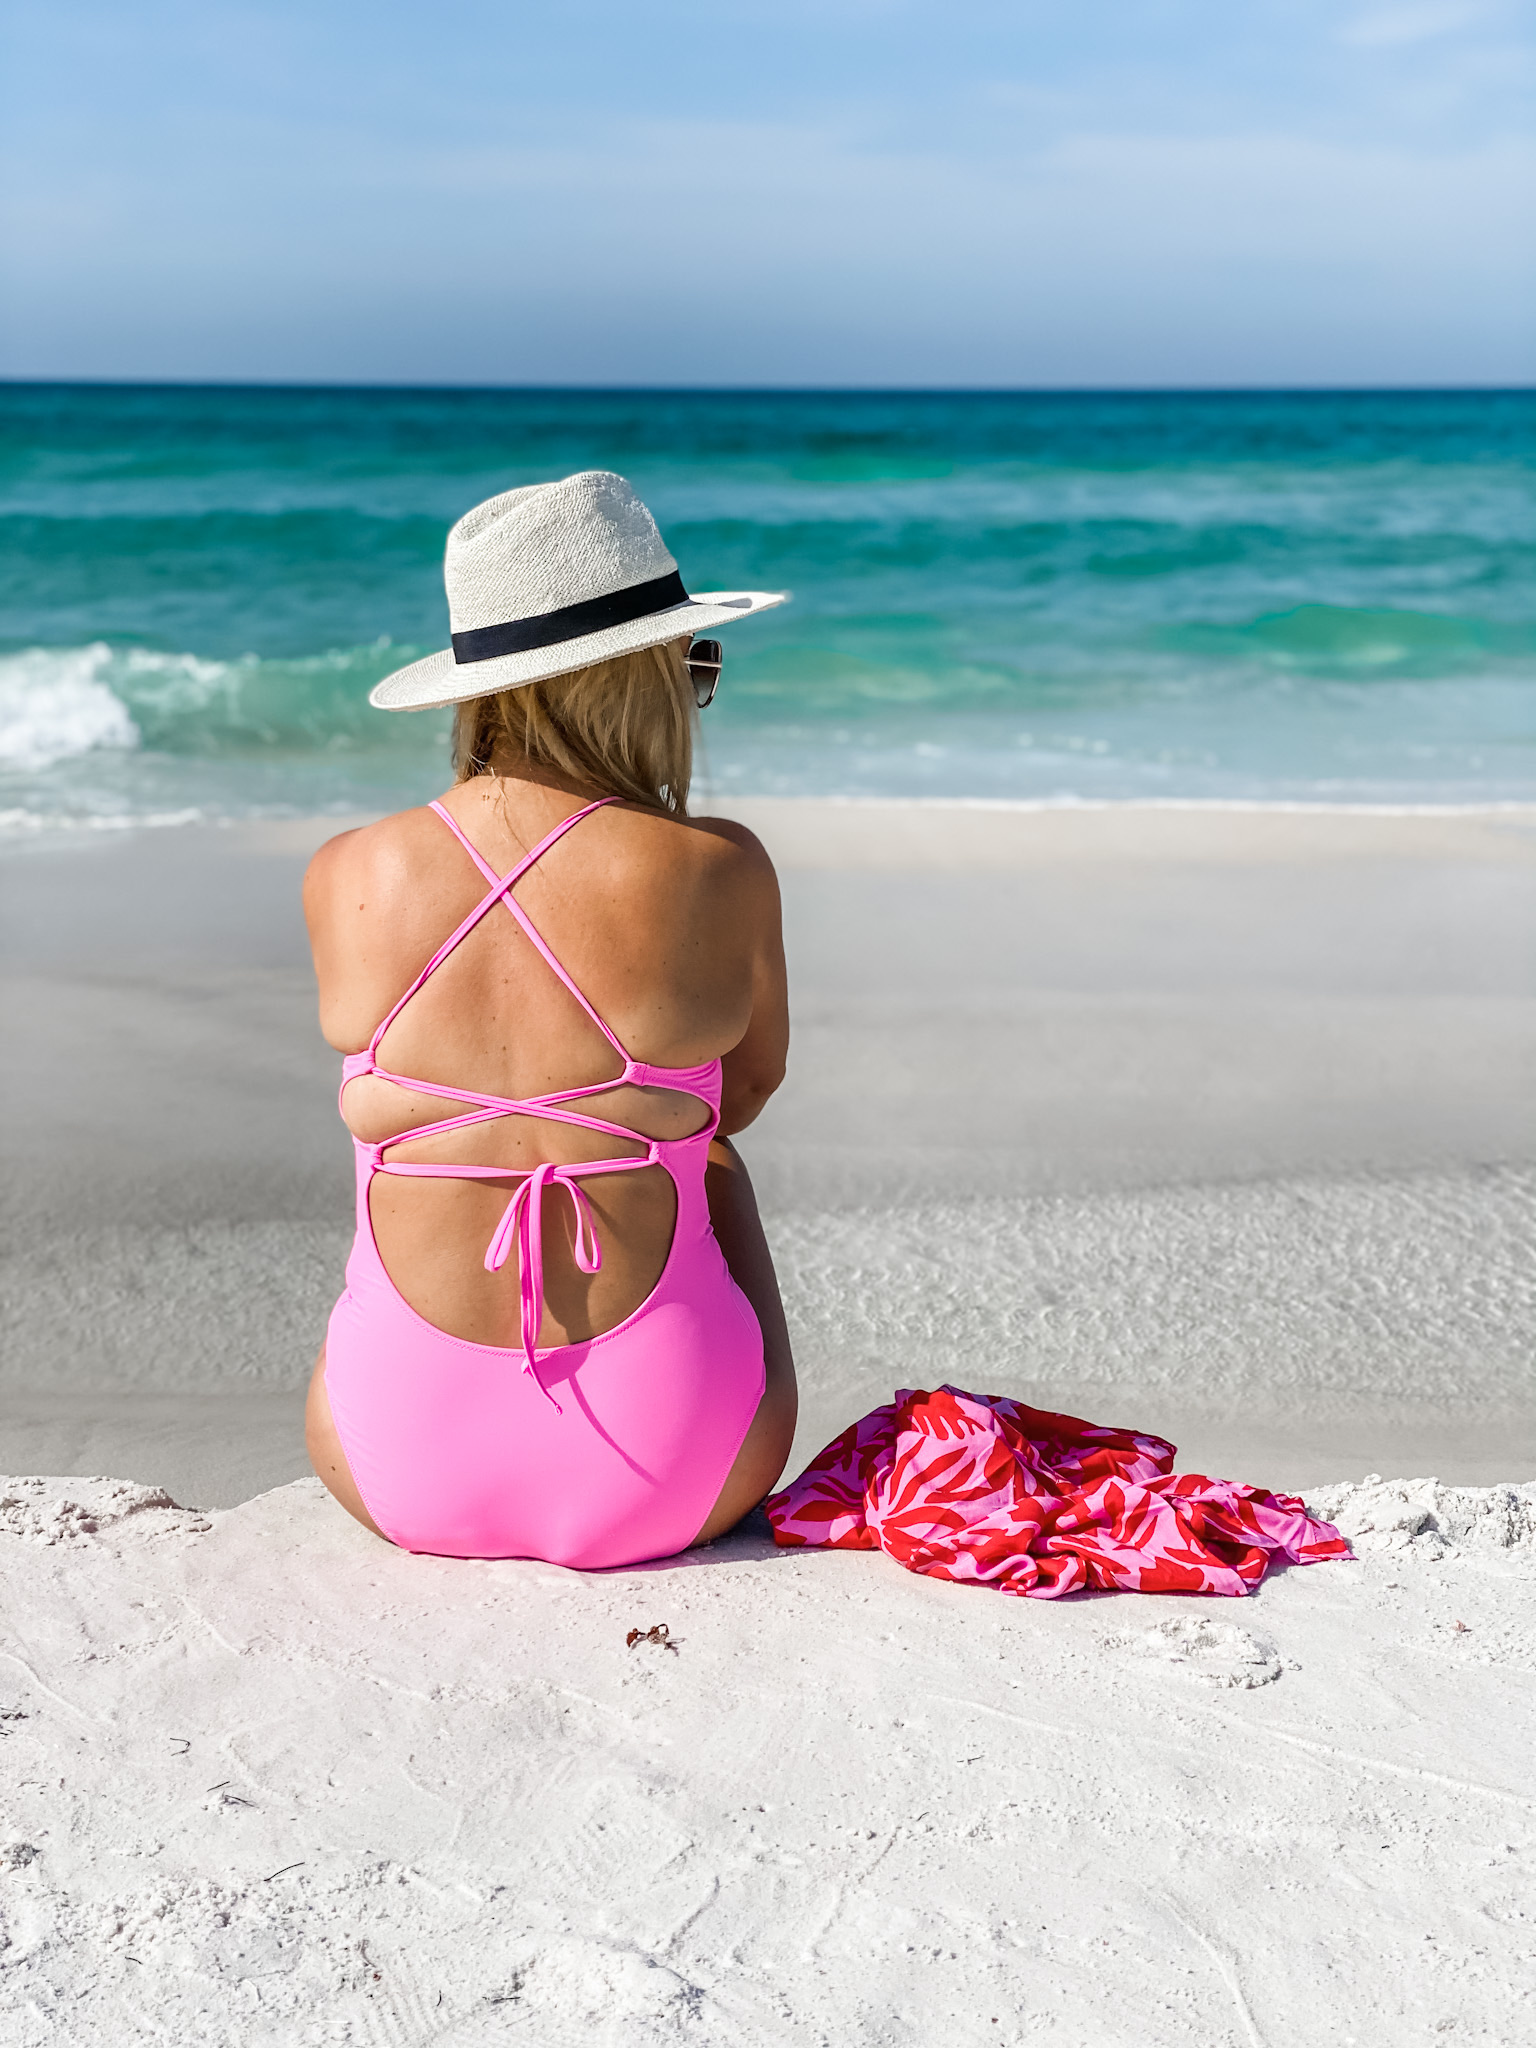 swim packed for my beach vacation | Beach Vacation by popular Houston fashion blog, The House of Fancy: image of a woman sitting on a white sand beach next to the ocean and wearing a pink one piece swimsuit and straw fedora.